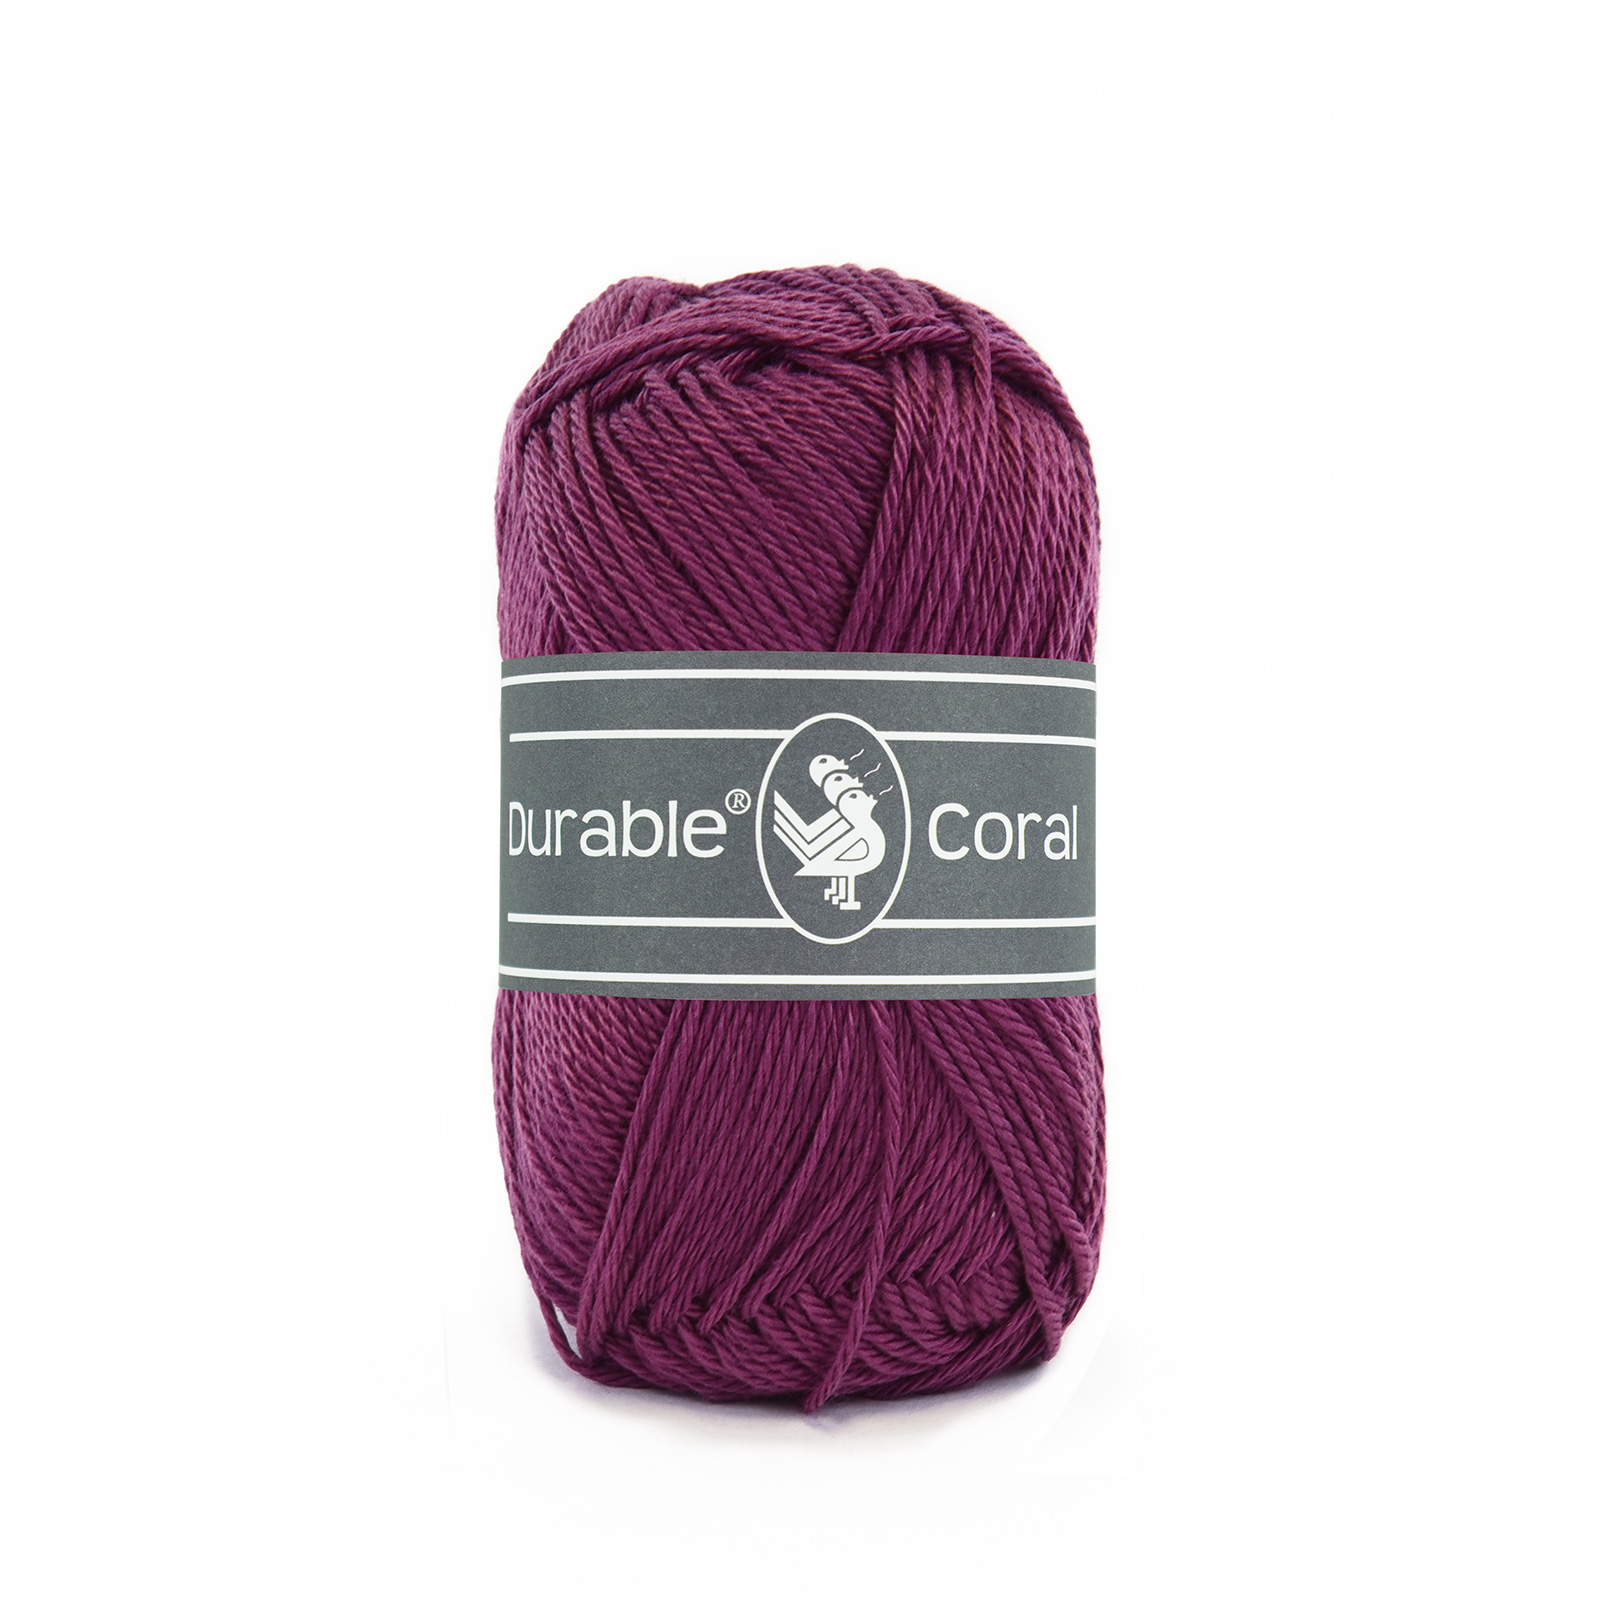 Durable Coral – 249 Plum